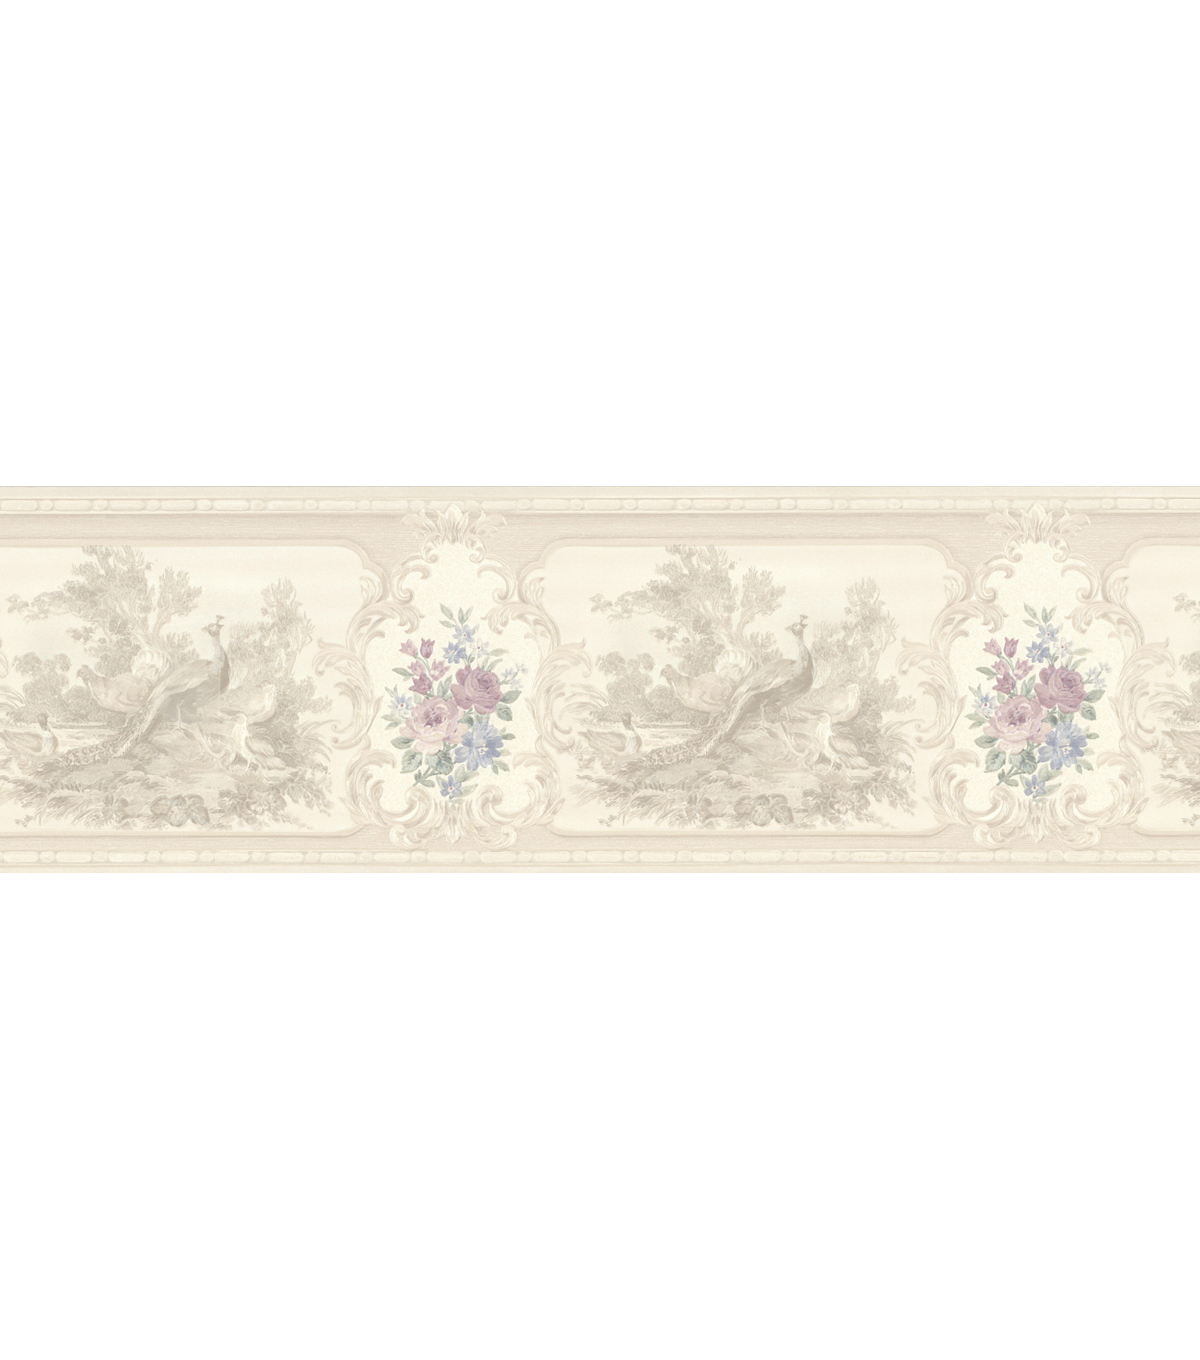 Kris Lavender Aviary Cameo Fleur Wallpaper Border Sample